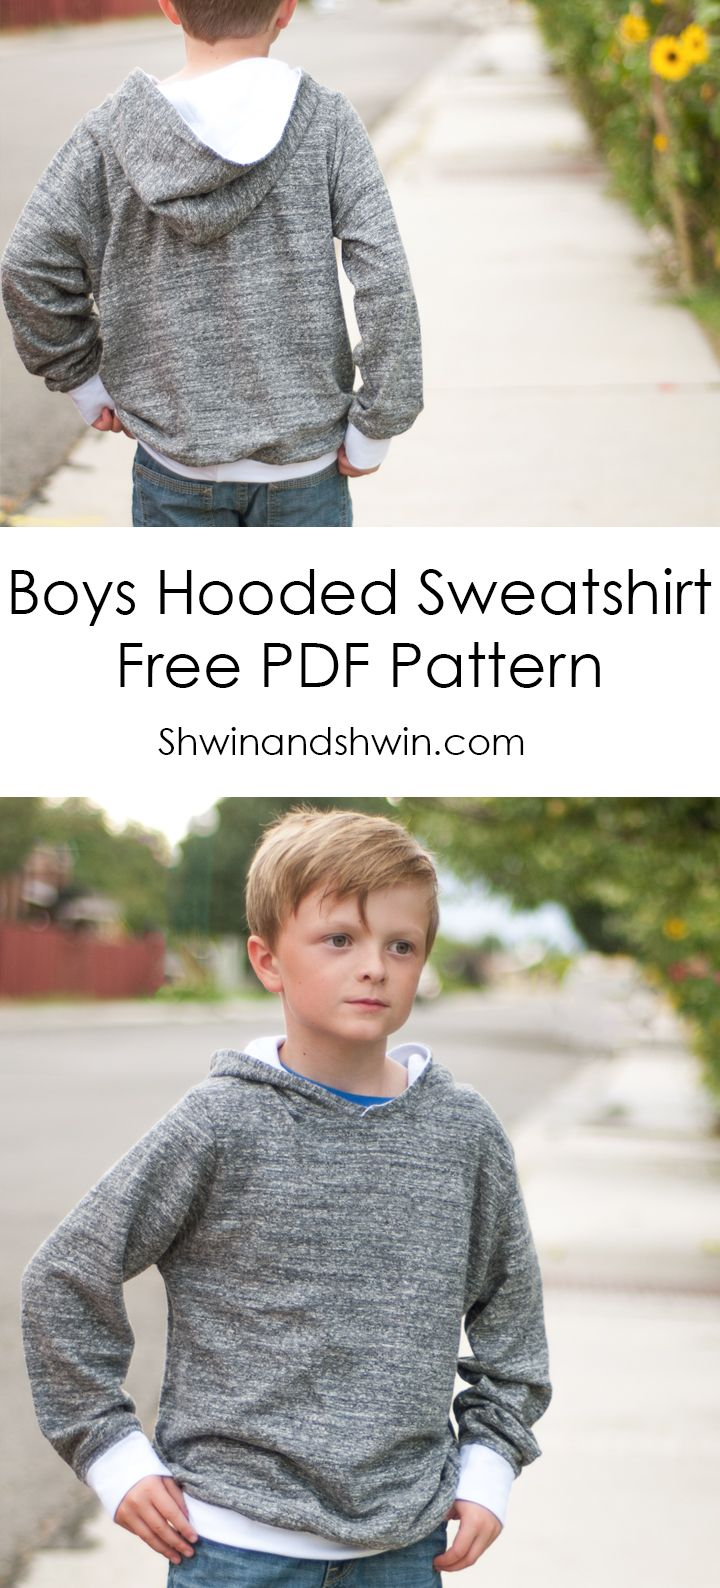 Boys Hooded Sweatshirt || Free PDF Pattern || Shwin&Shwin